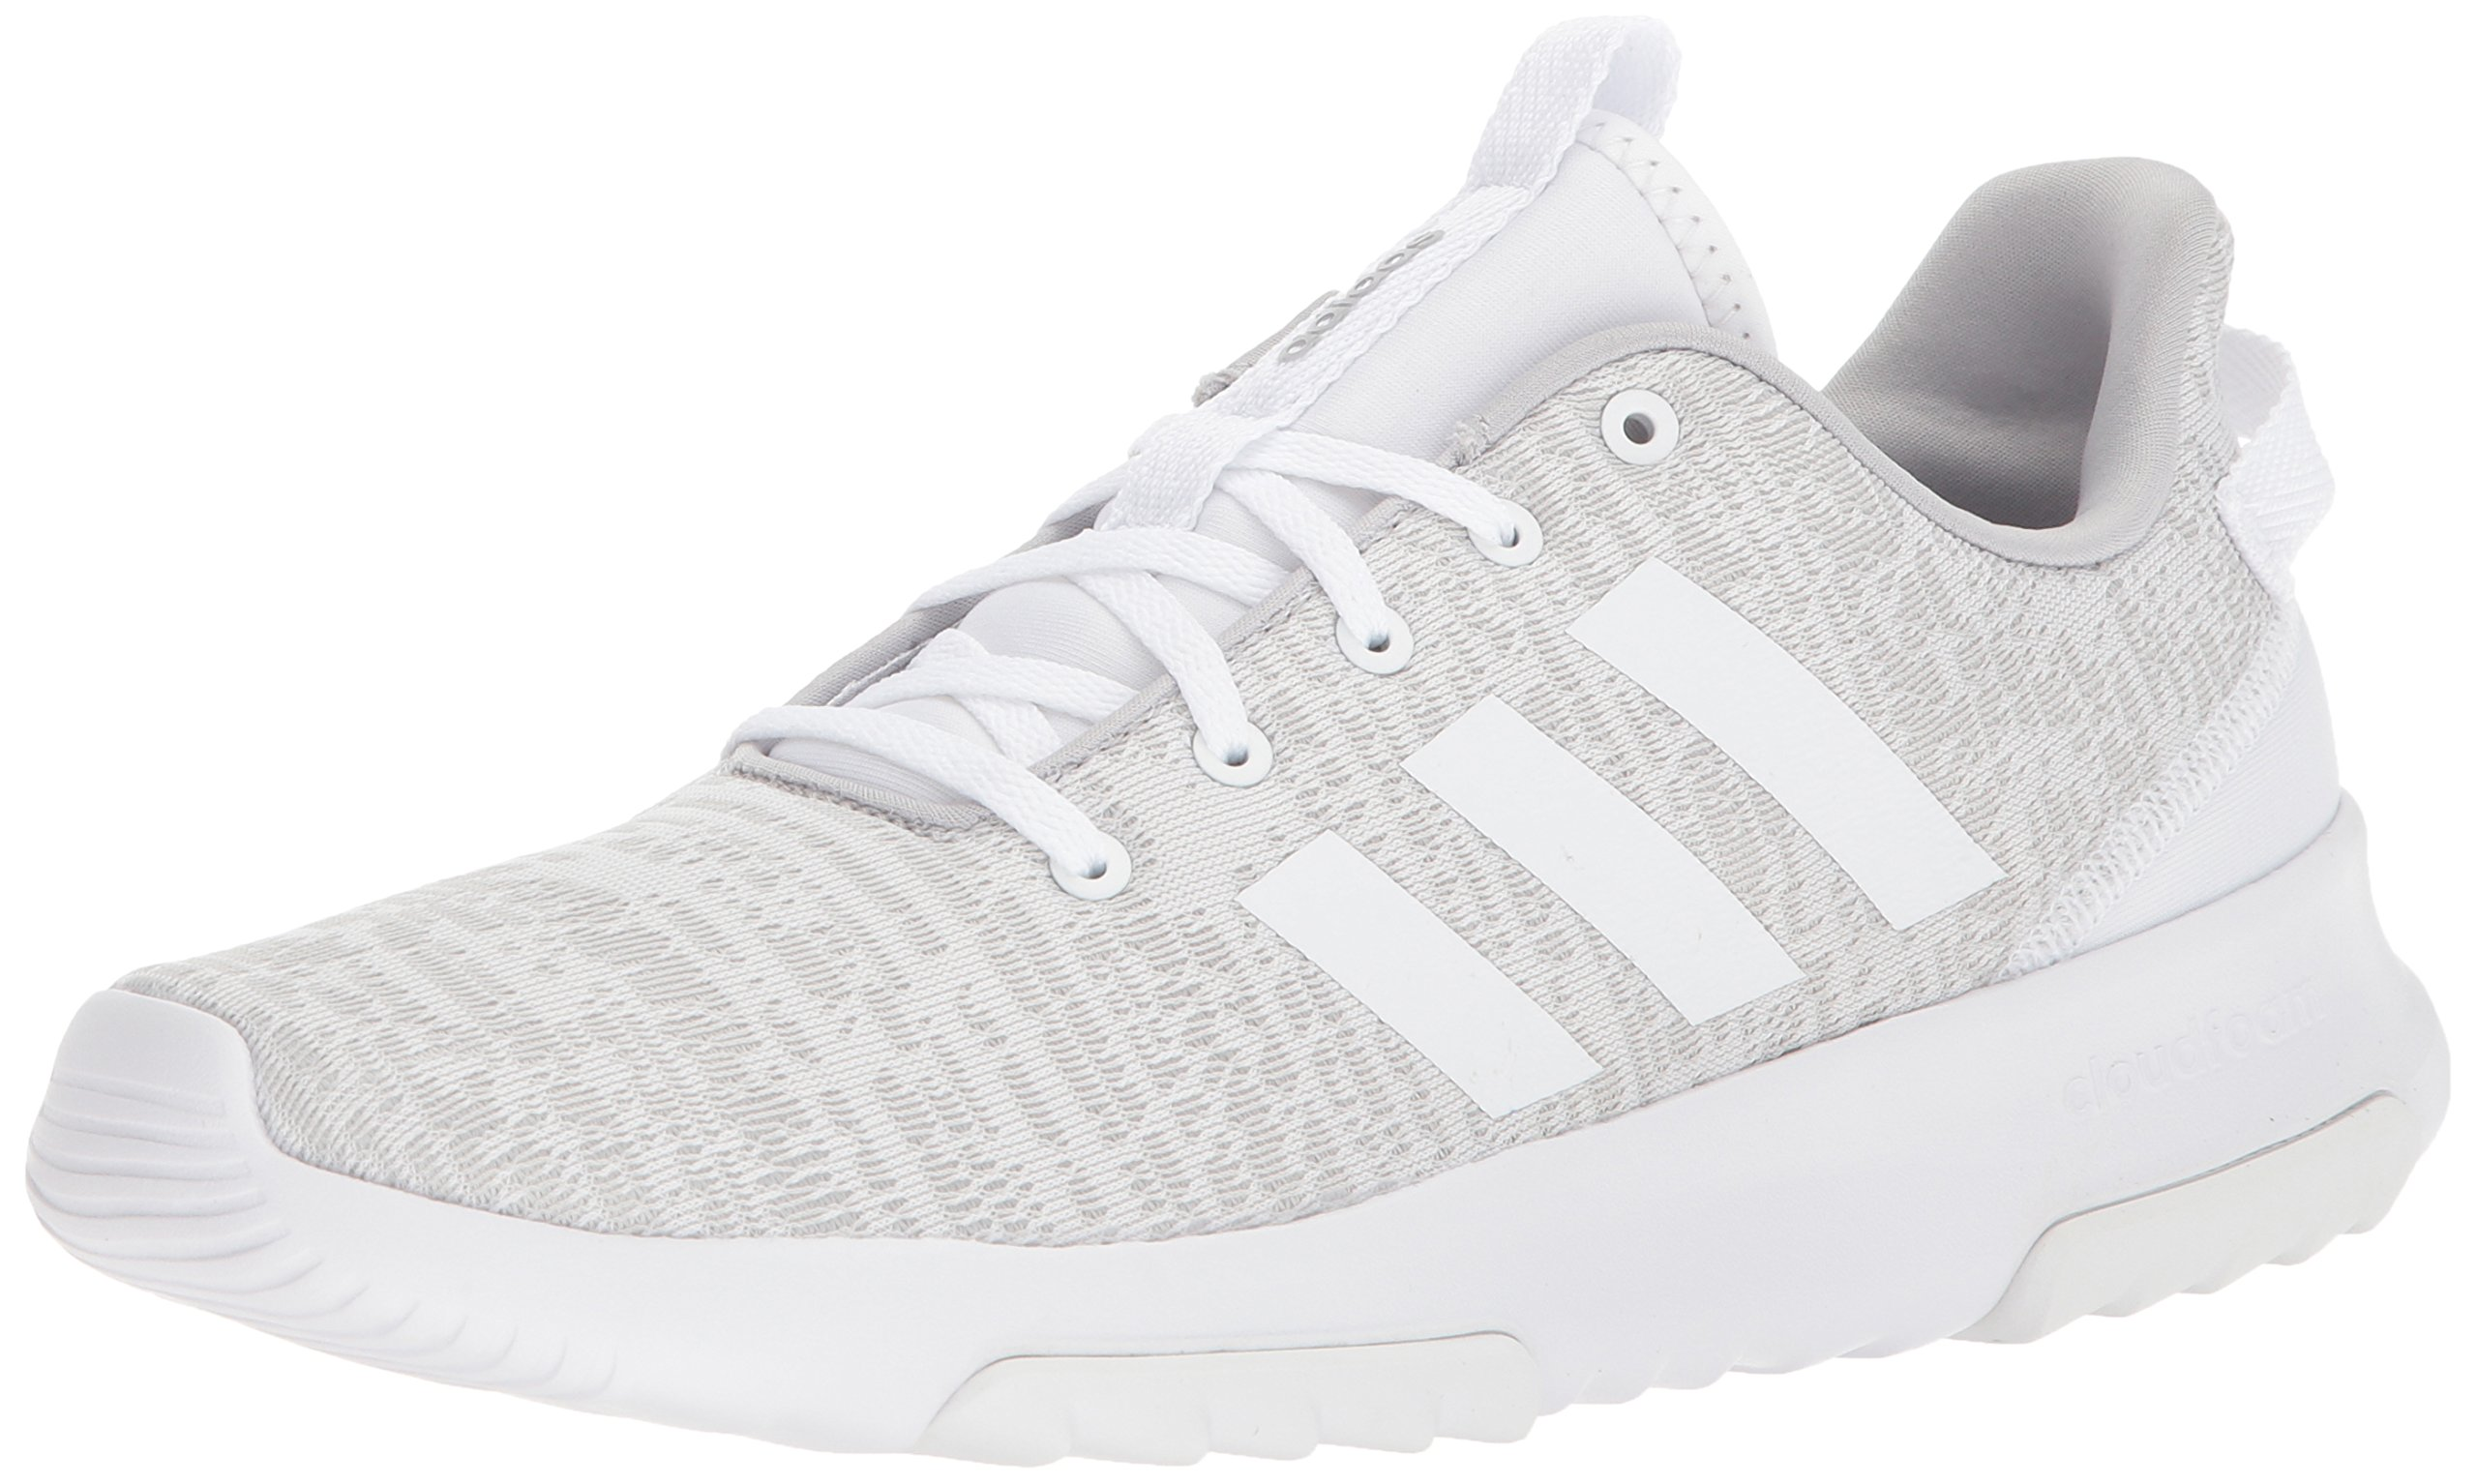 ae4a17342ae Galleon - Adidas Men's Cf Racer Tr Running Shoe, One/White/Grey Two, 13 M US